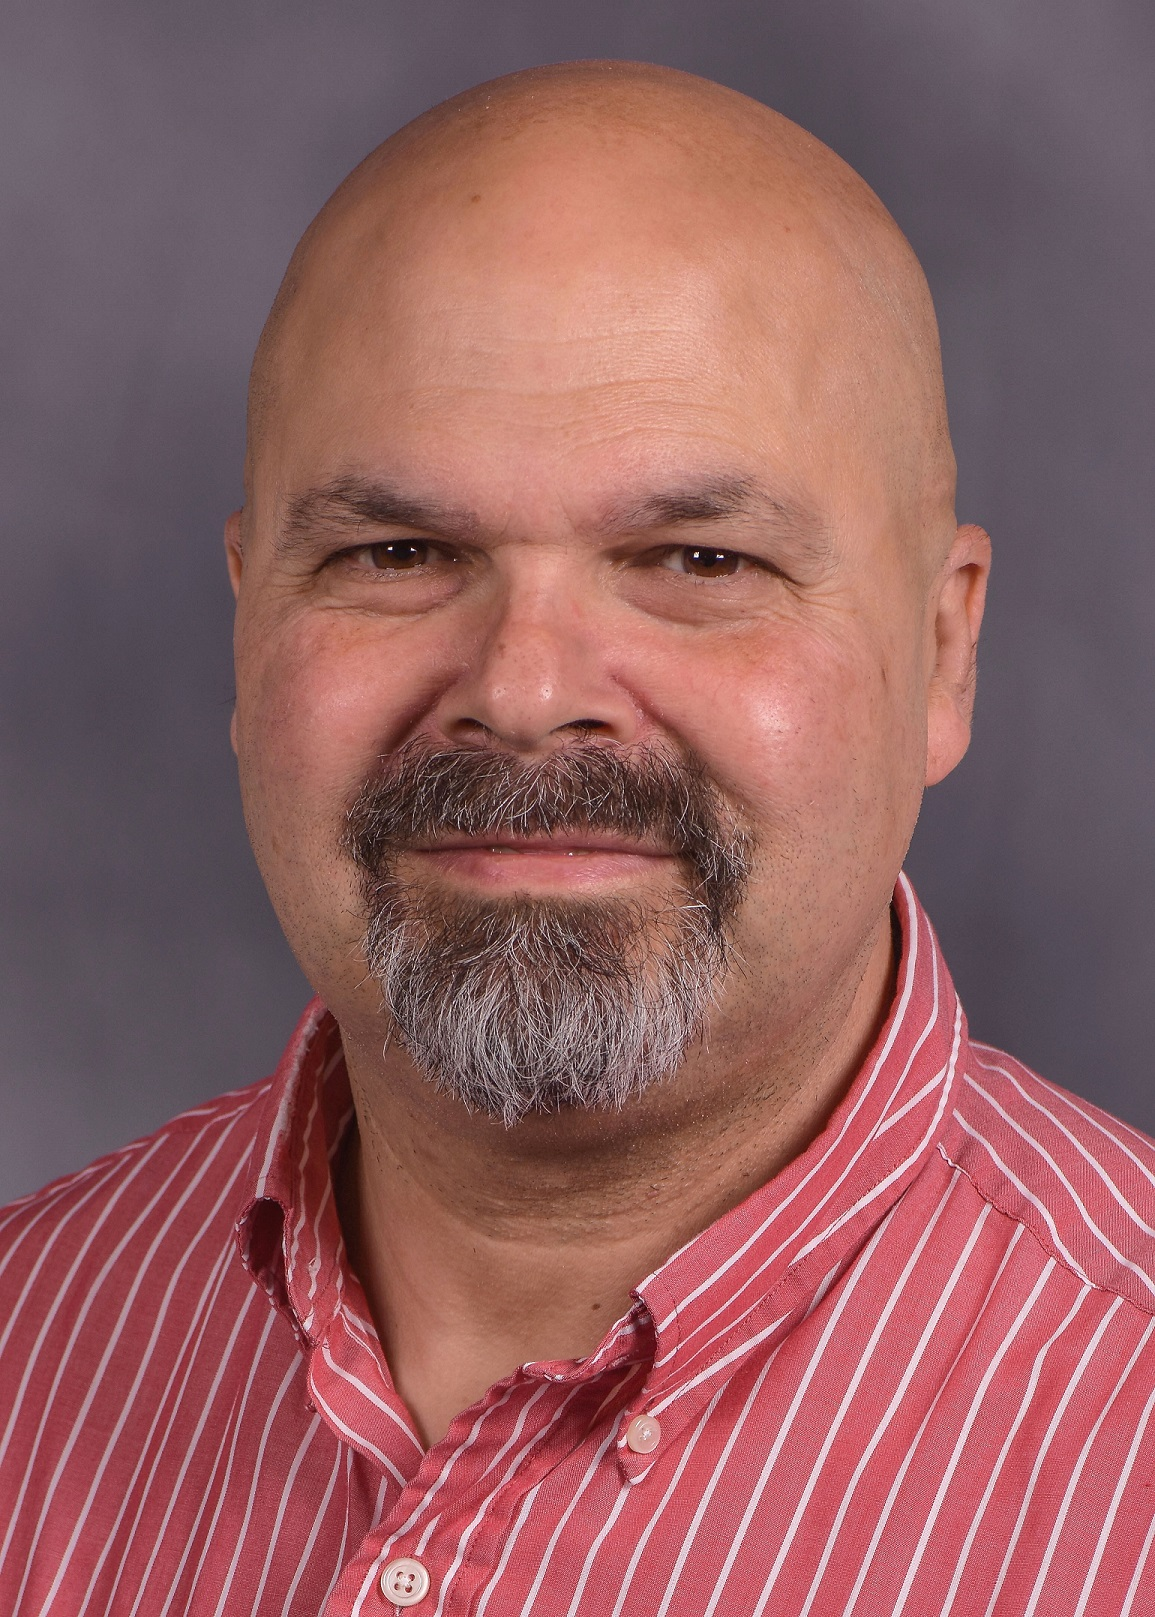 David Kaplan, Ph.D., professor in the Department of Geography at Kent State University, has been elected president of the American Association of Geographers for 2019-20.